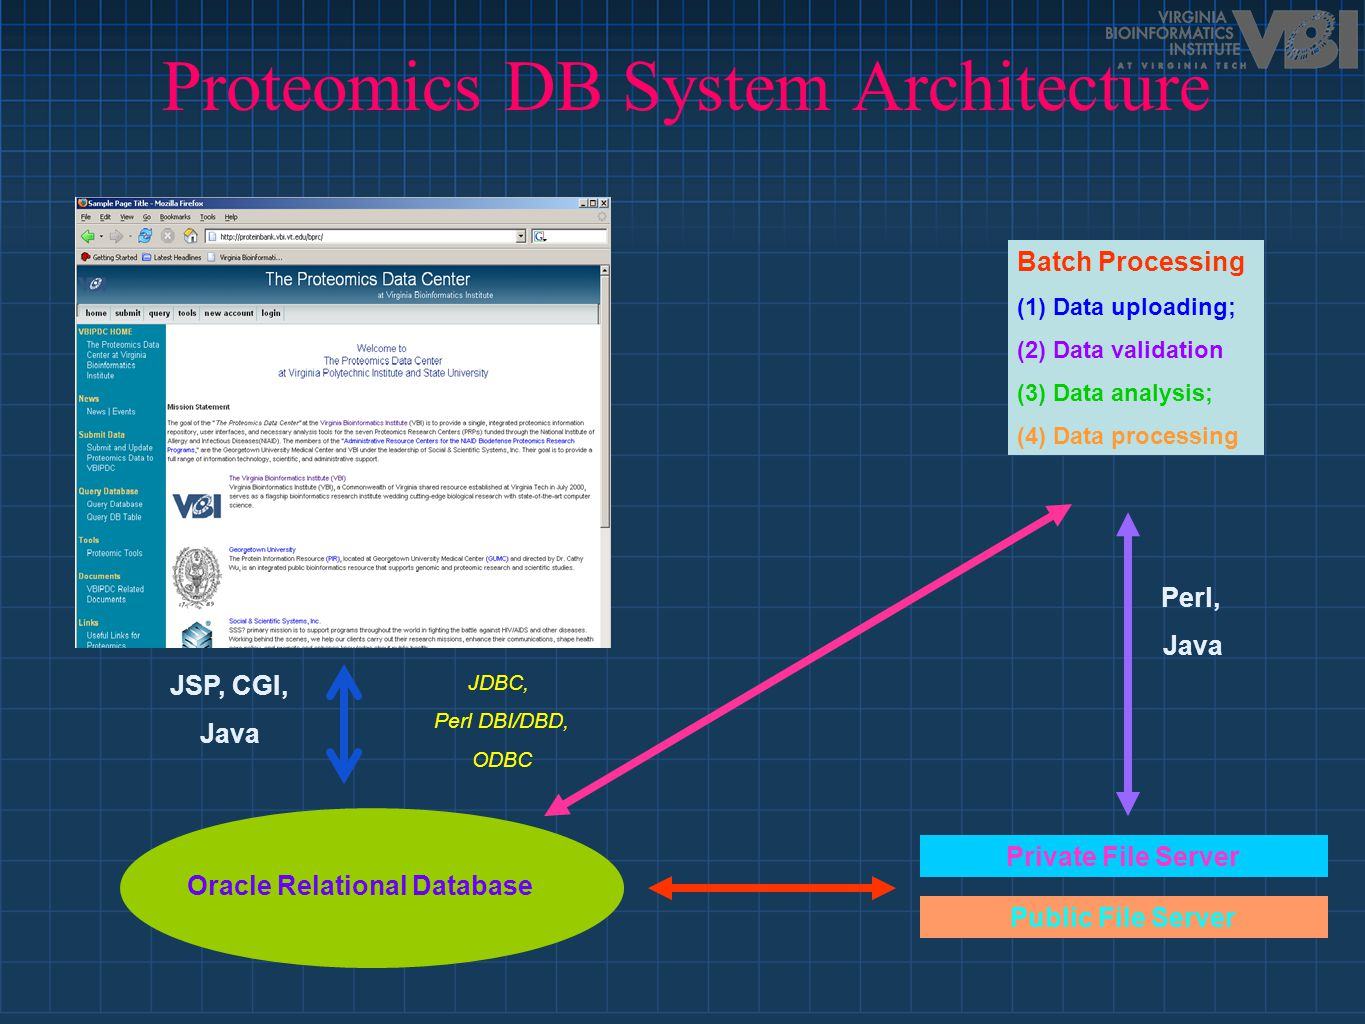 Proteomics DB System Architecture Public File Server Private File Server Oracle Relational Database JDBC, Perl DBI/DBD, ODBC Batch Processing (1) Data